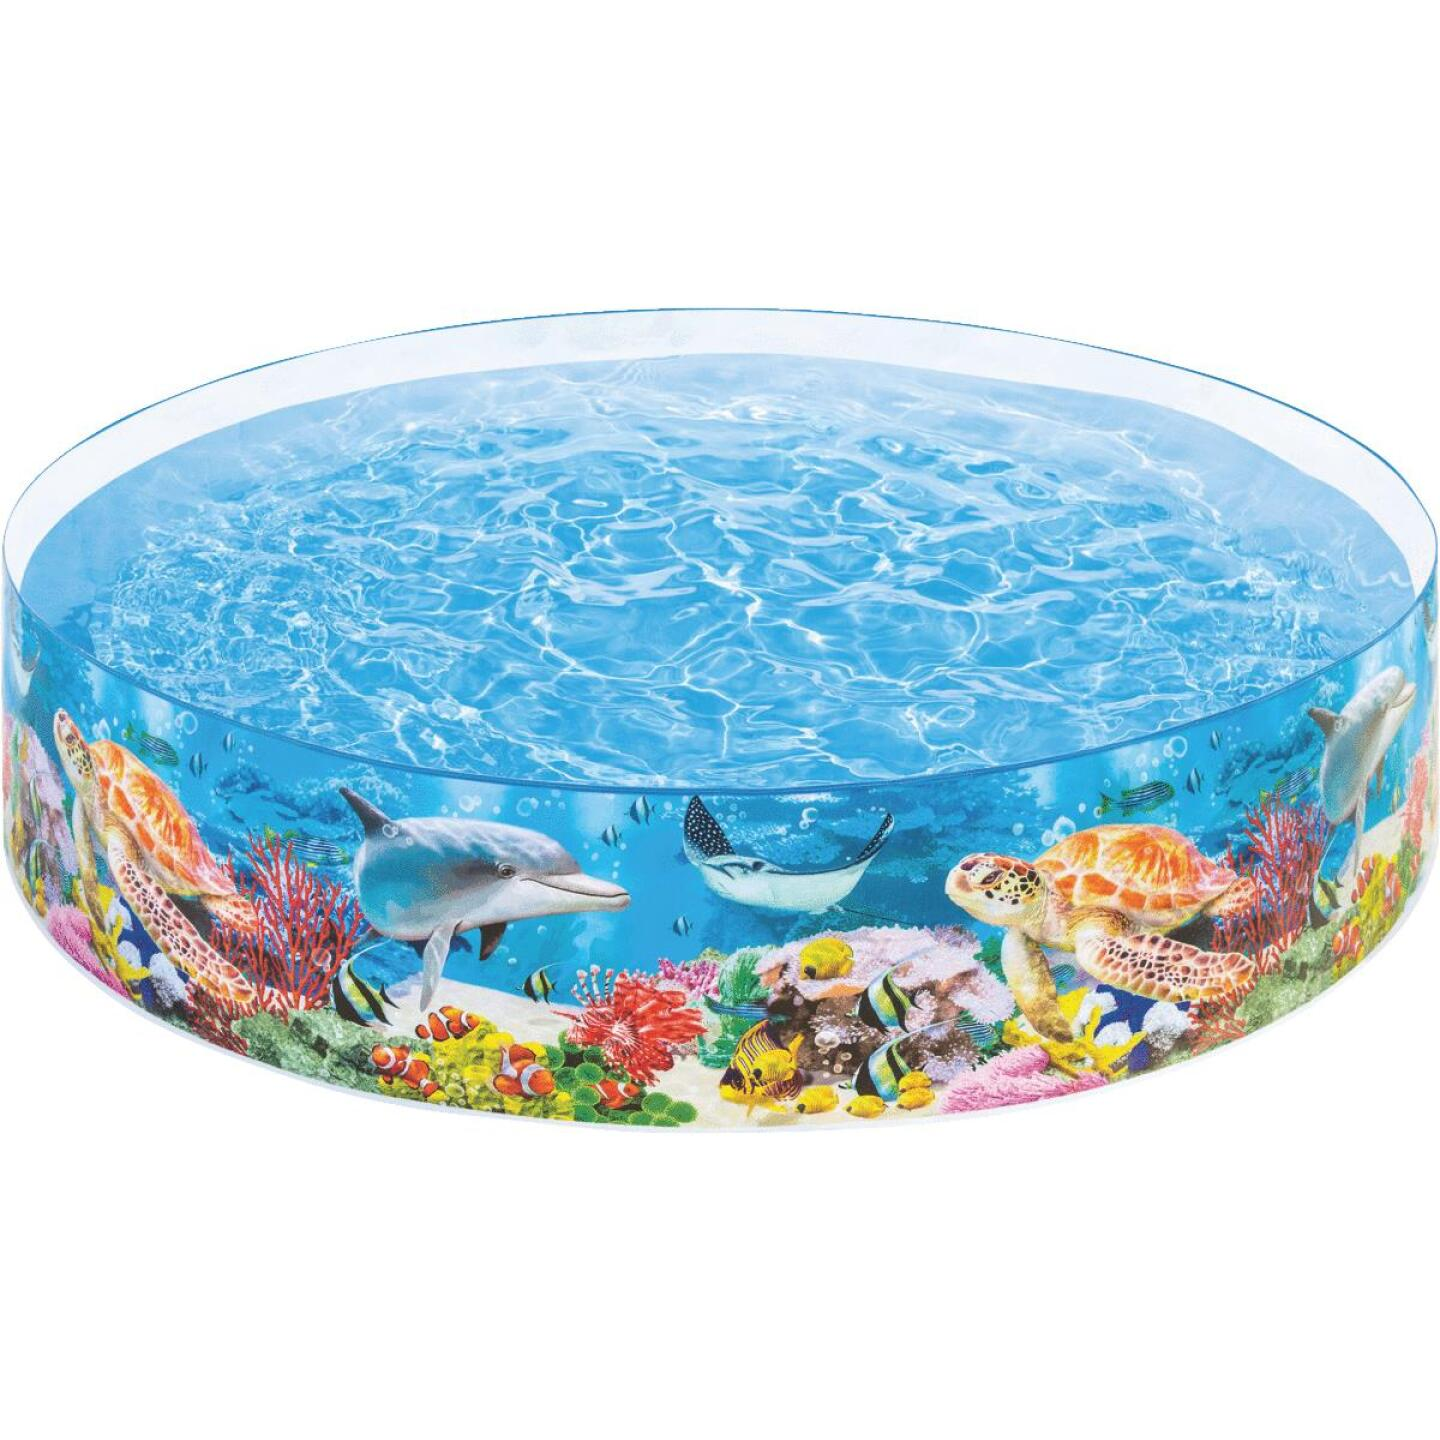 Intex 18 In. D. x 8 Ft. Dia. Polyethylene Deep Blue Sea Snapset Pool Image 3